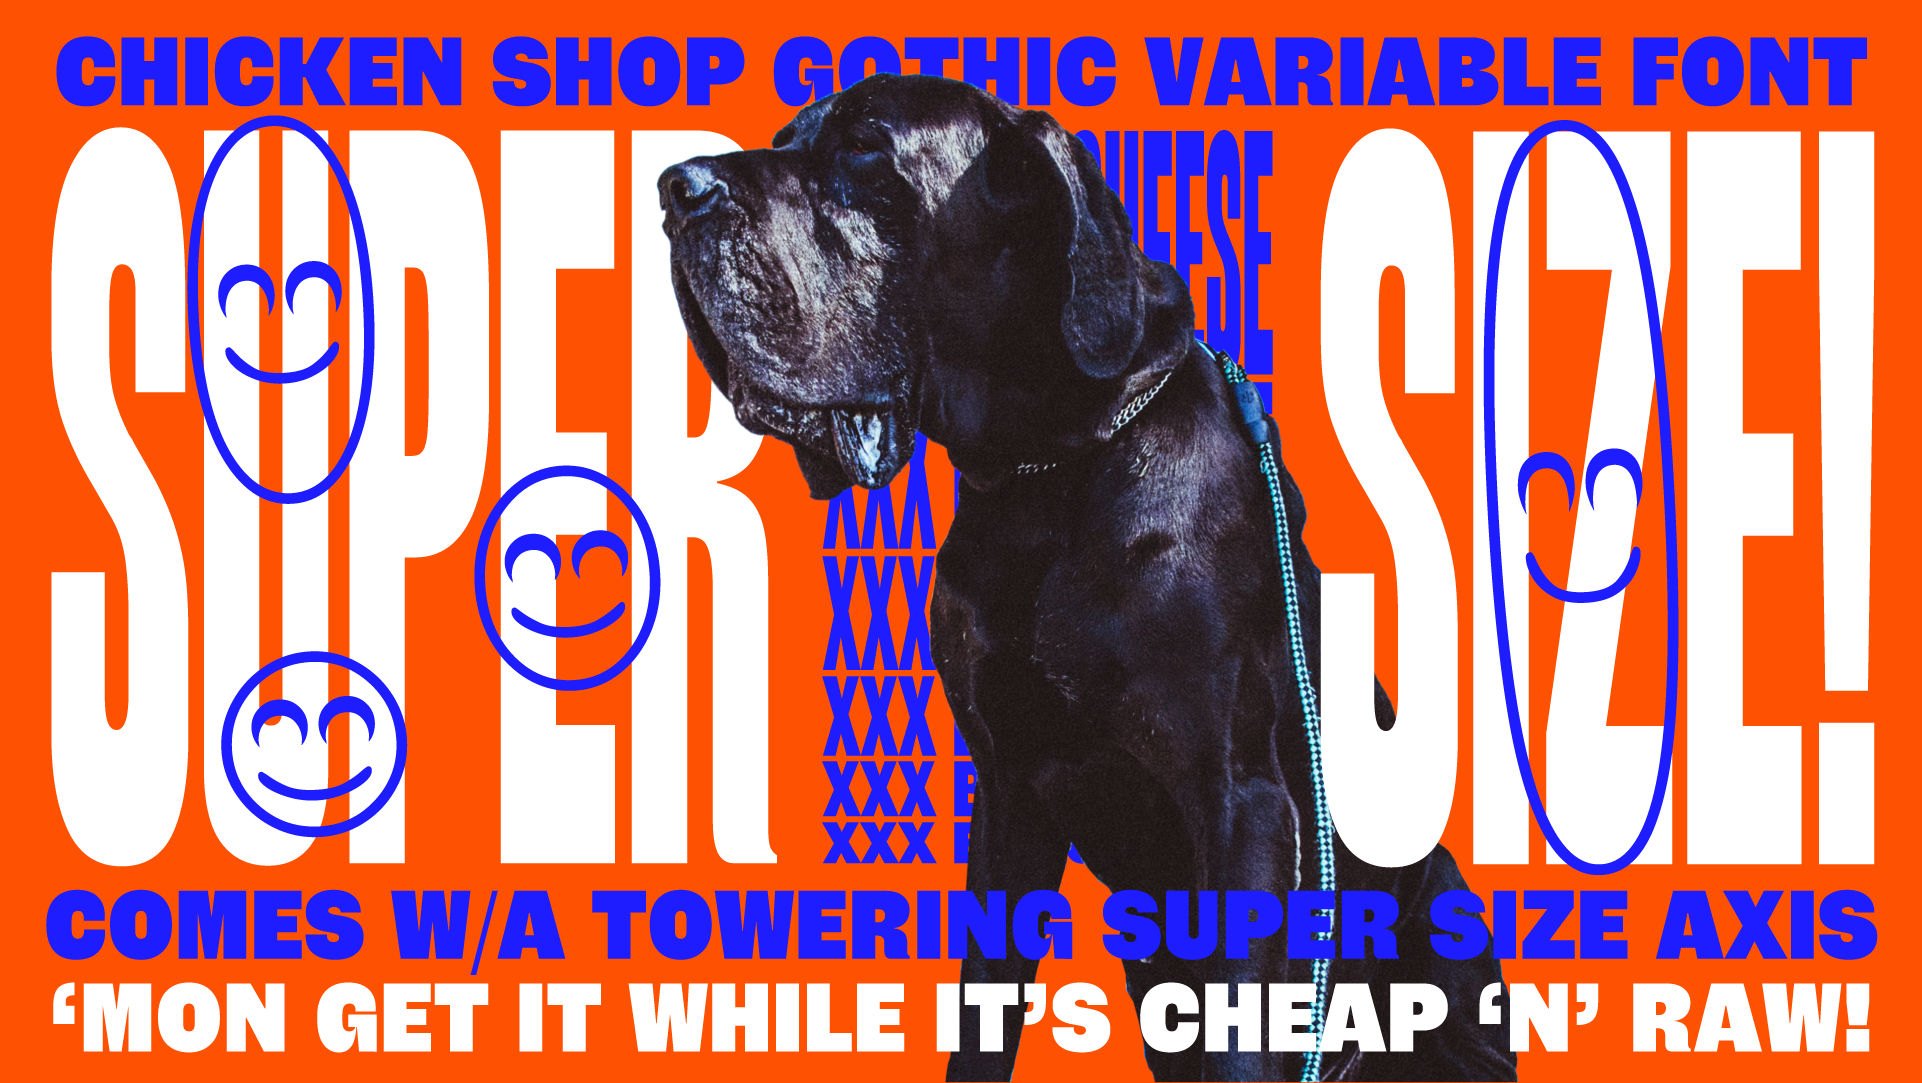 Buy the Chicken Shop Gothic variable font designed by Lewis McGuffie, now available from www.typeverything.com